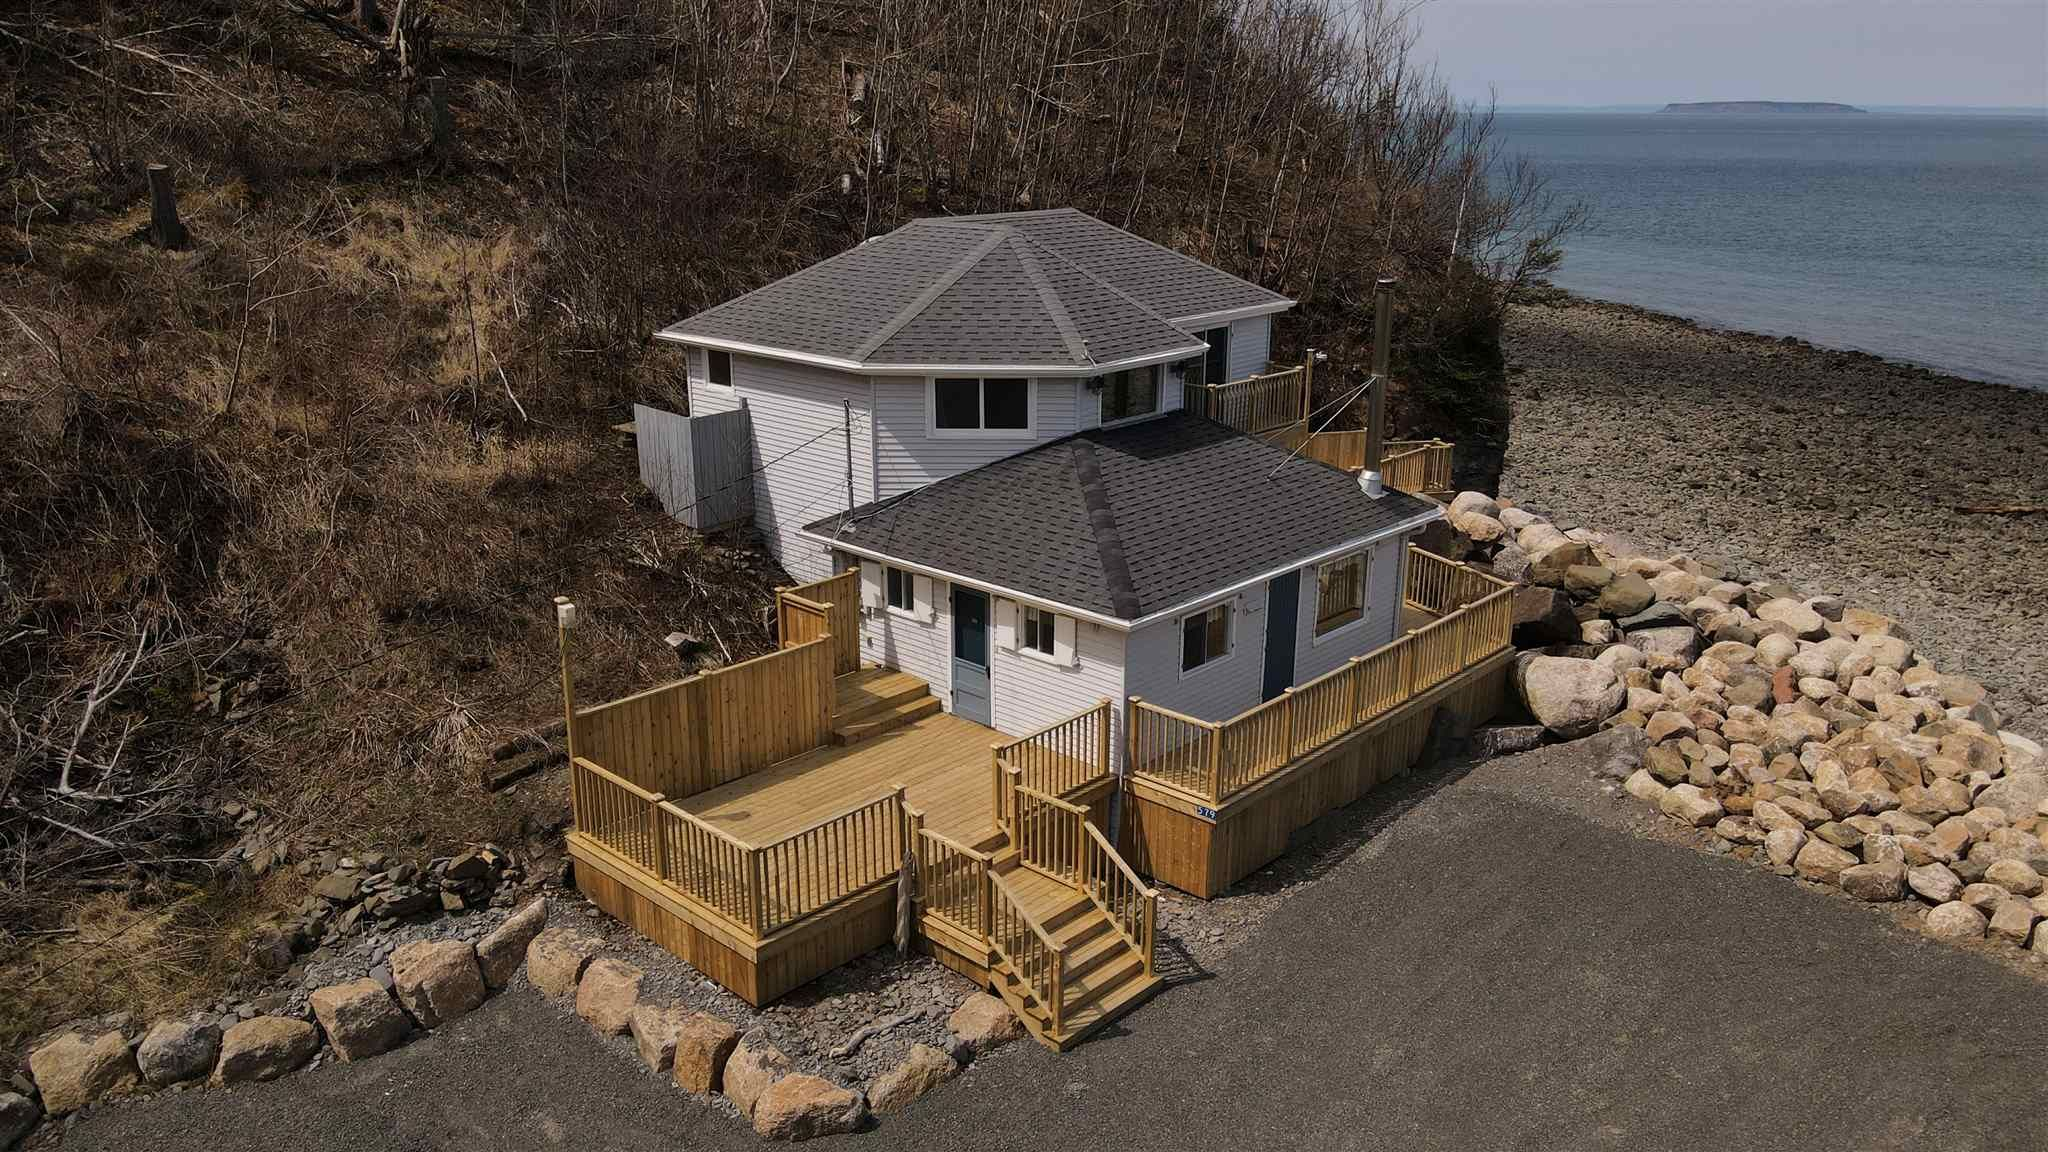 Main Photo: 579 Shore Road in Ogilvie: 404-Kings County Residential for sale (Annapolis Valley)  : MLS®# 202109599